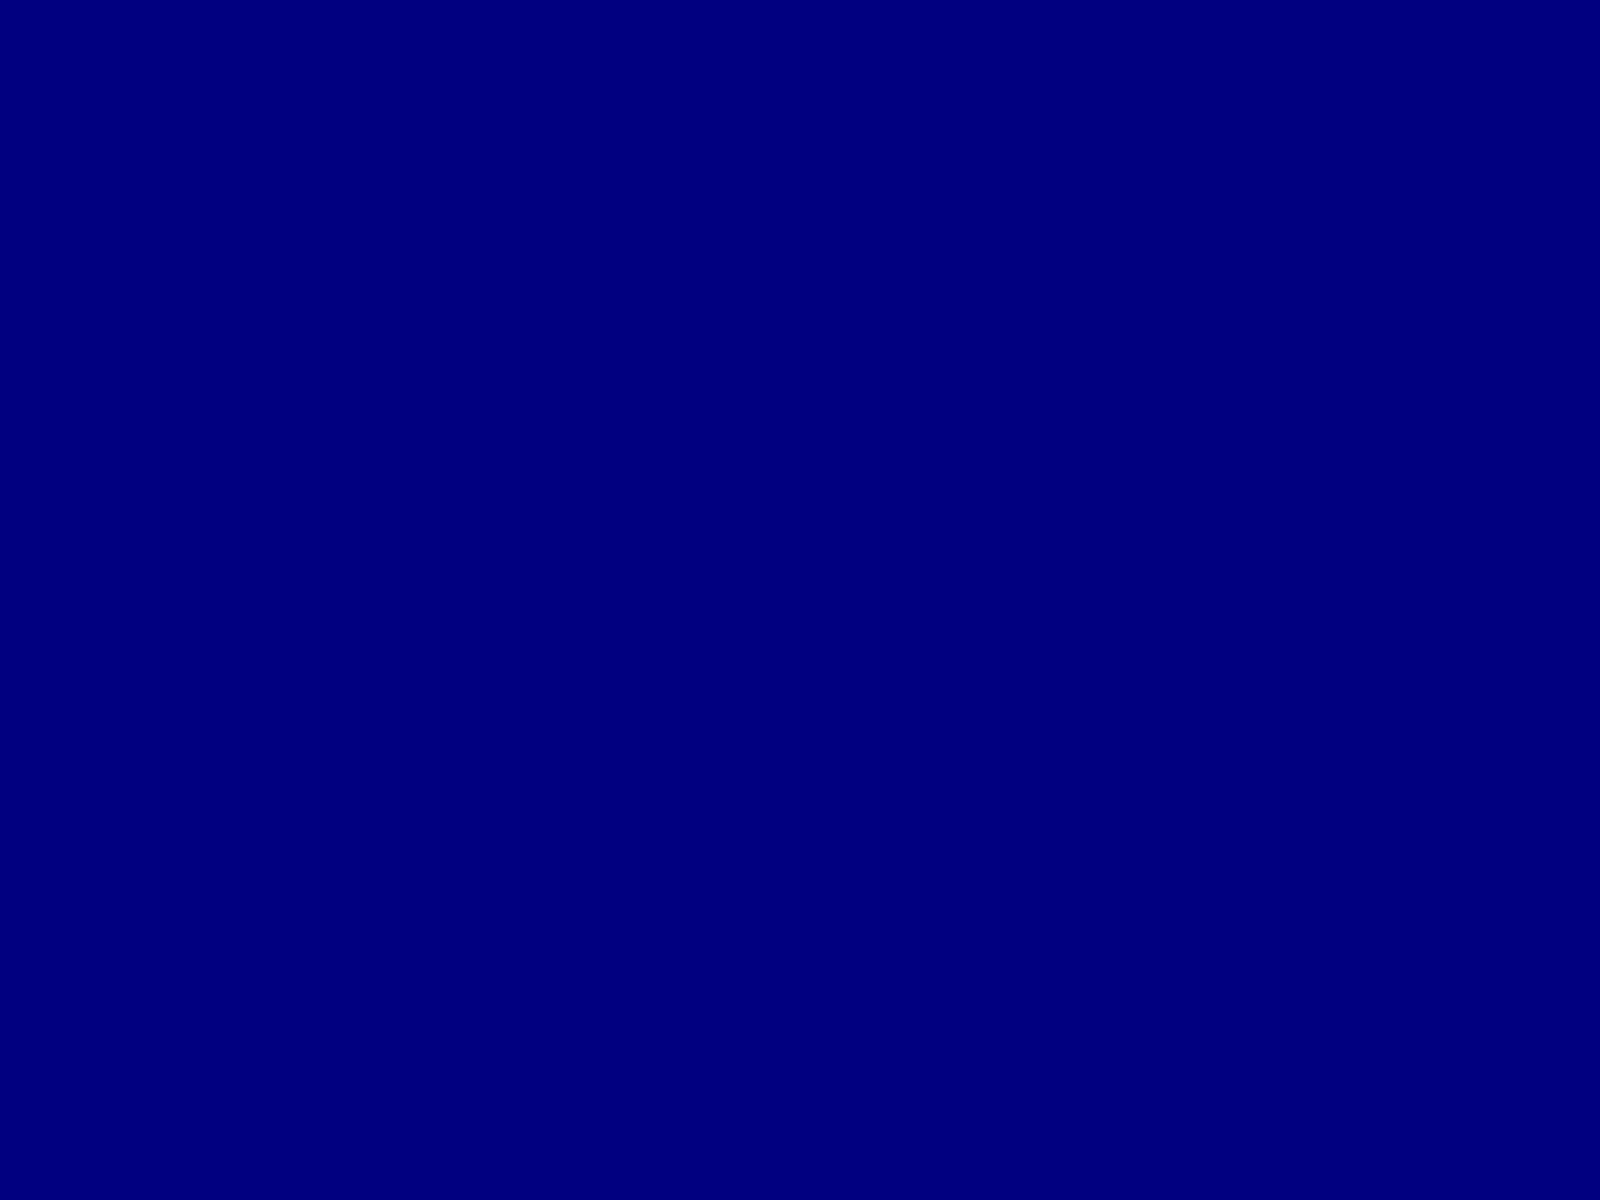 Navy Blue Background Related Keywords amp Suggestions   Navy 1600x1200